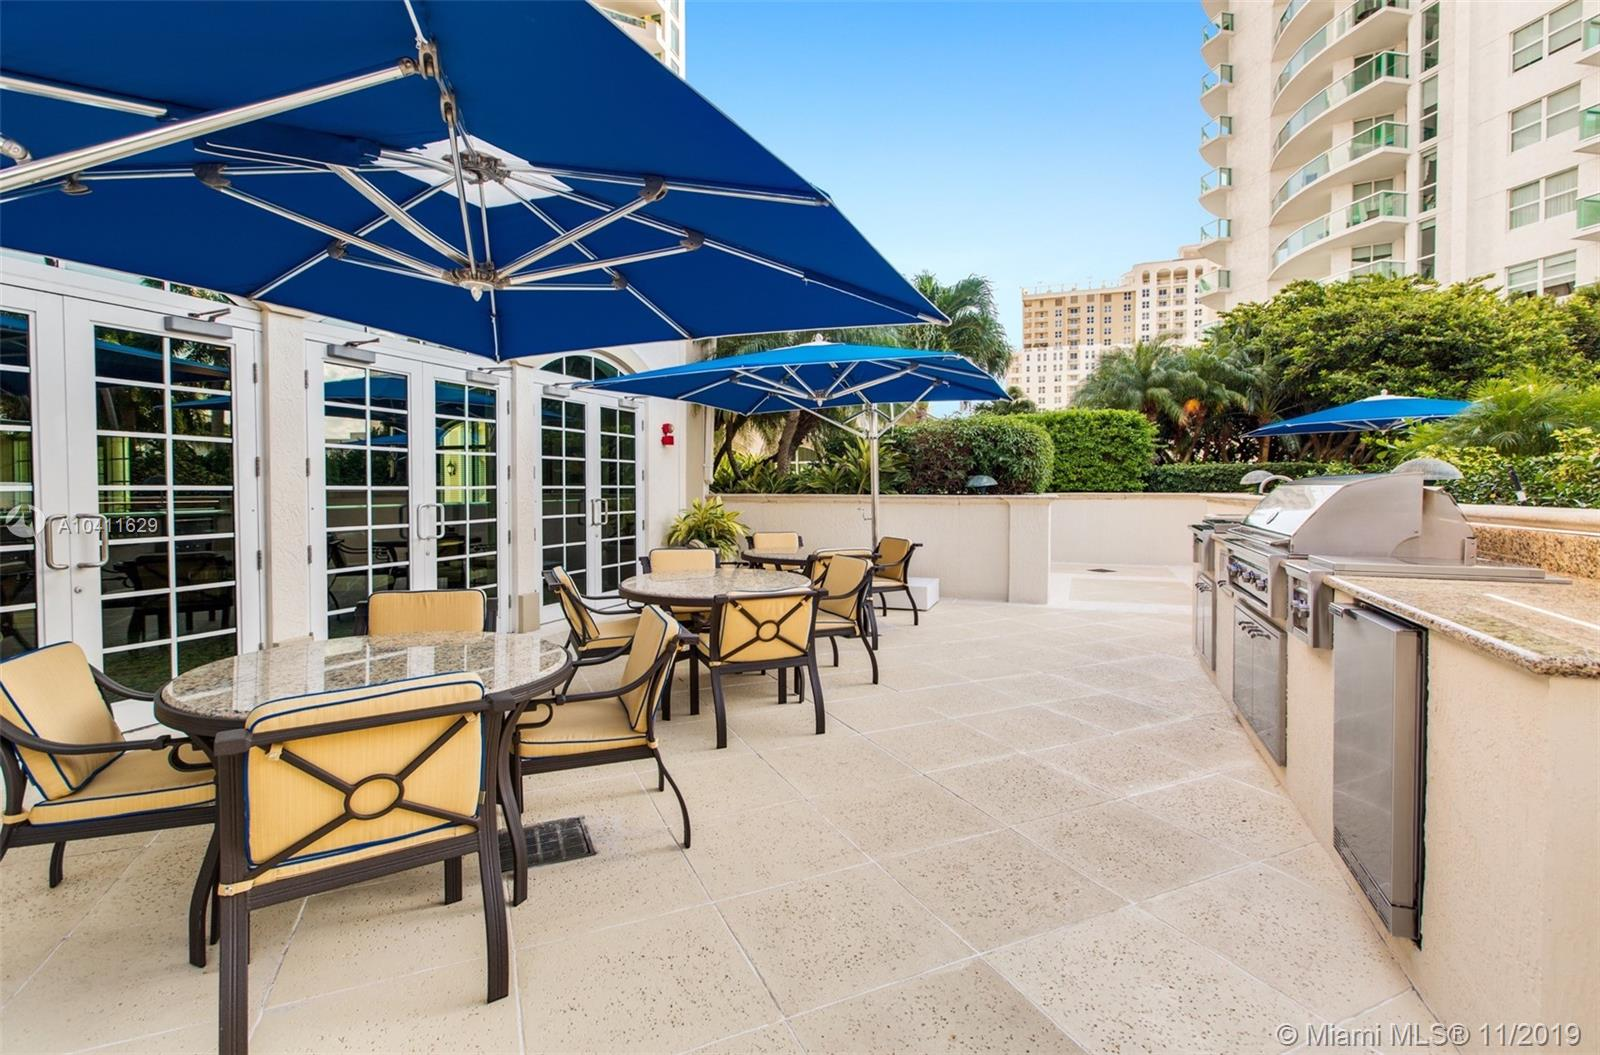 411 North New River Dr E, #2303, Fort Lauderdale, FL 33301